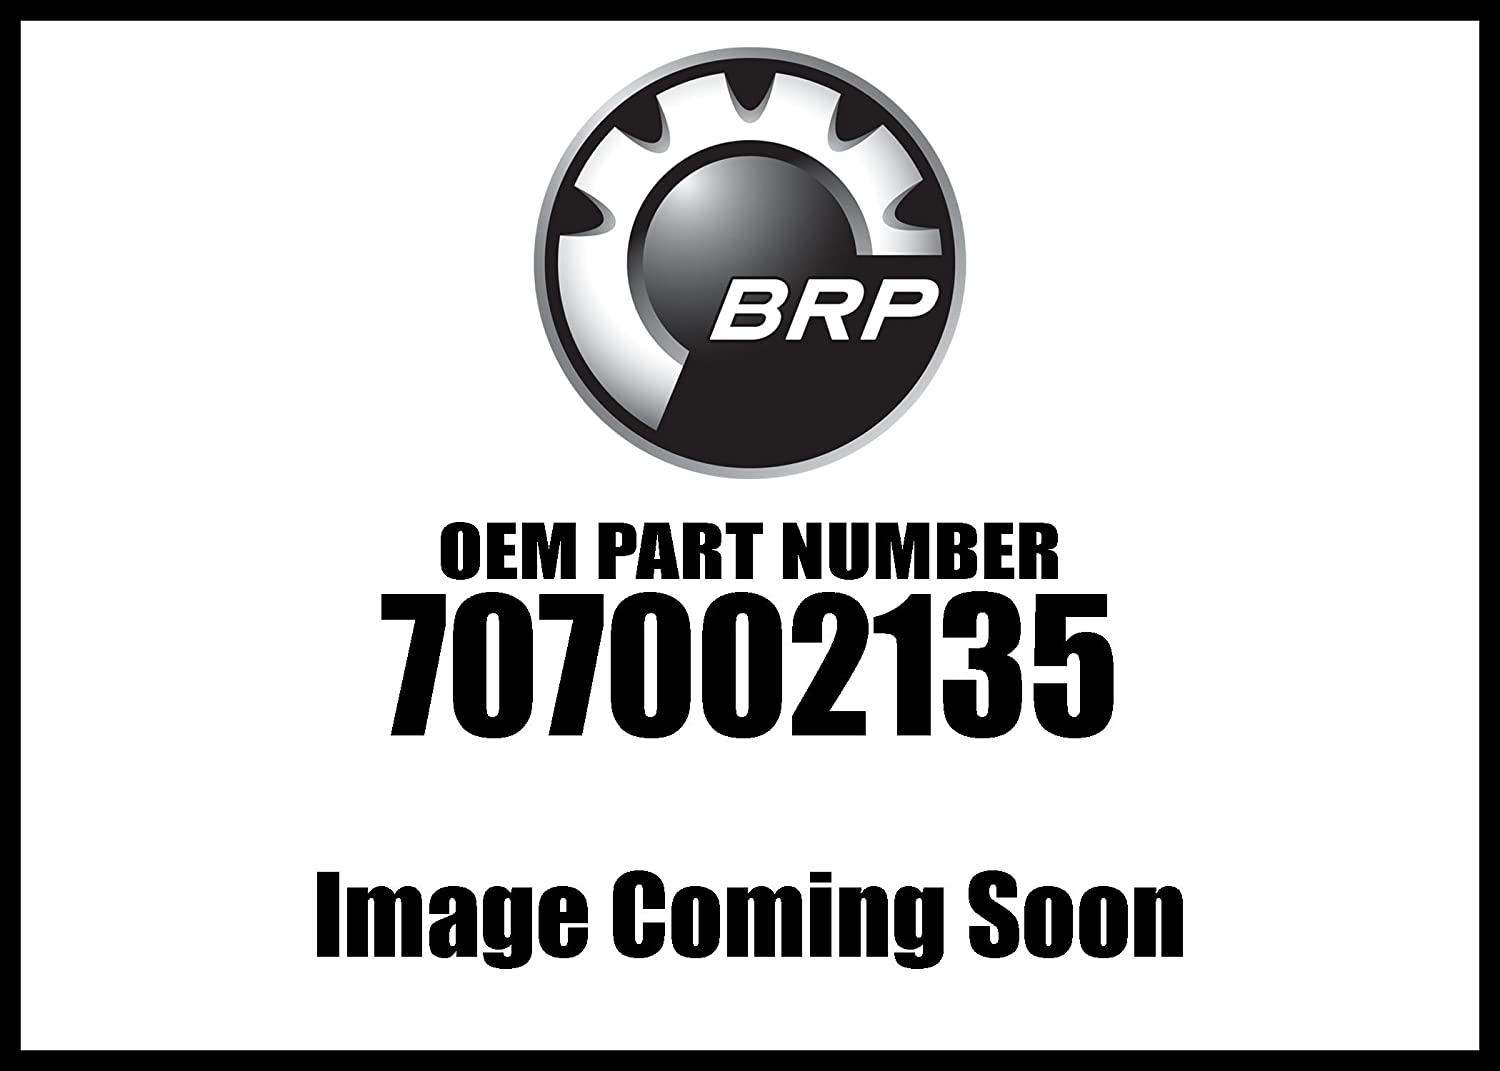 Can-Am Housing Ass Y 707002135 New Oem